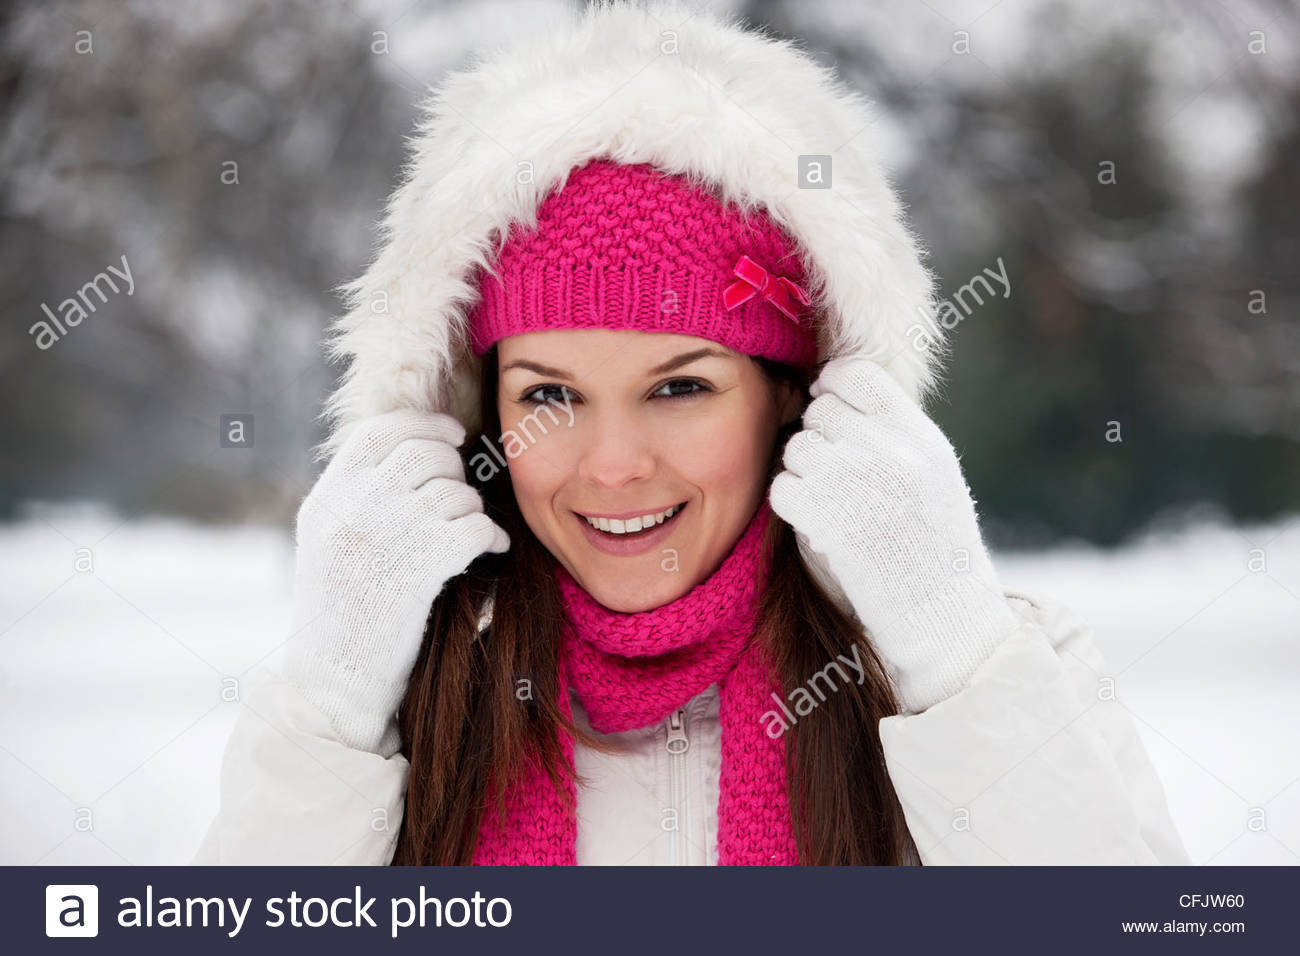 A young woman putting up the hood of her coat, smiling - Stock Image